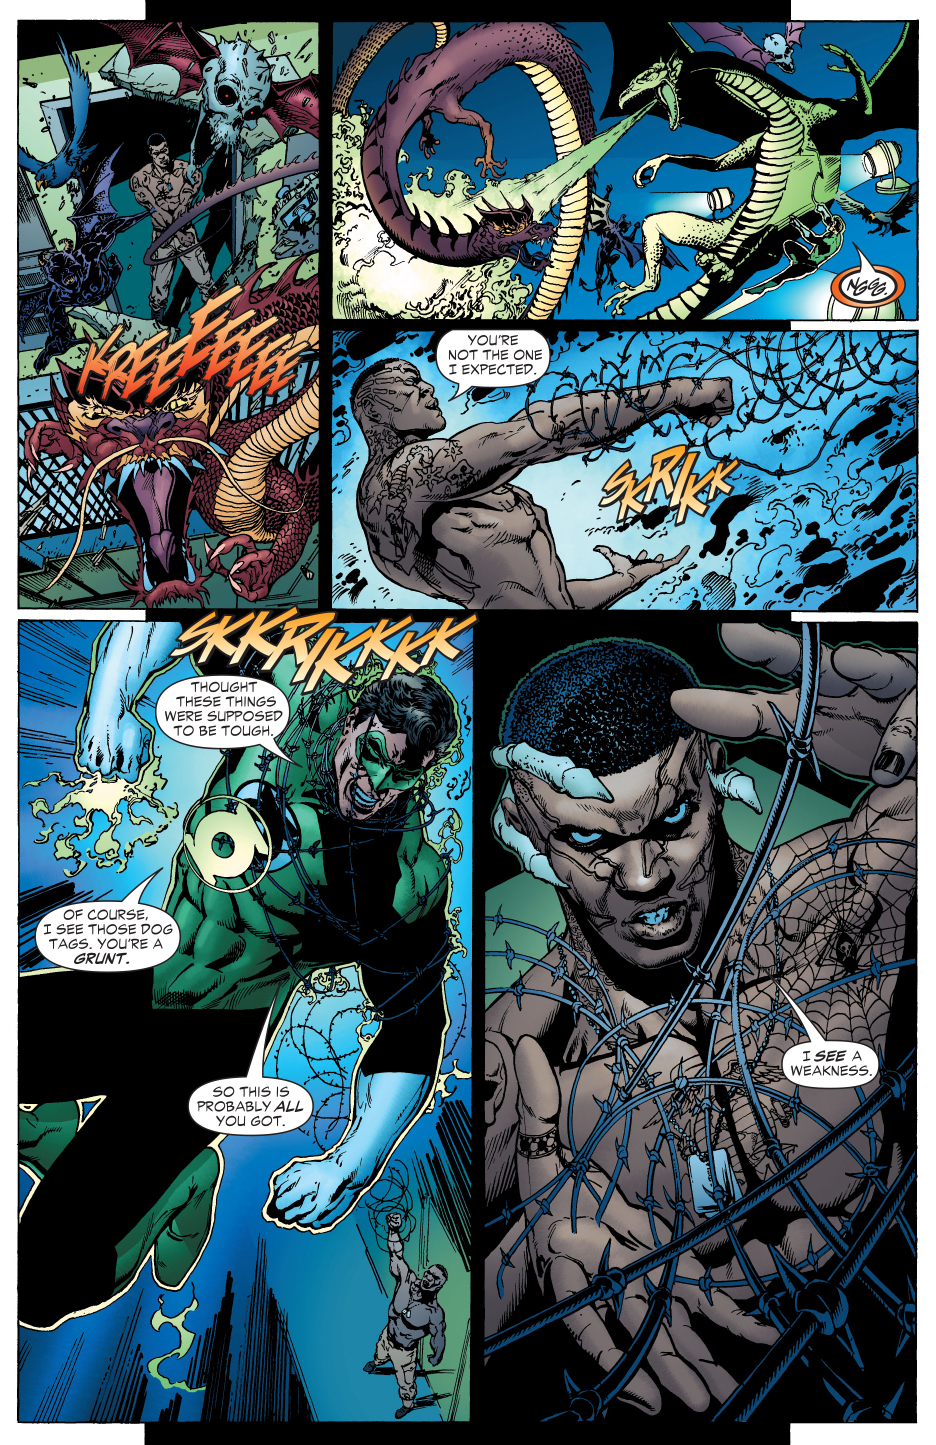 Batman And Green Lantern VS The Tattooed Man \u2013 Comicnewbies